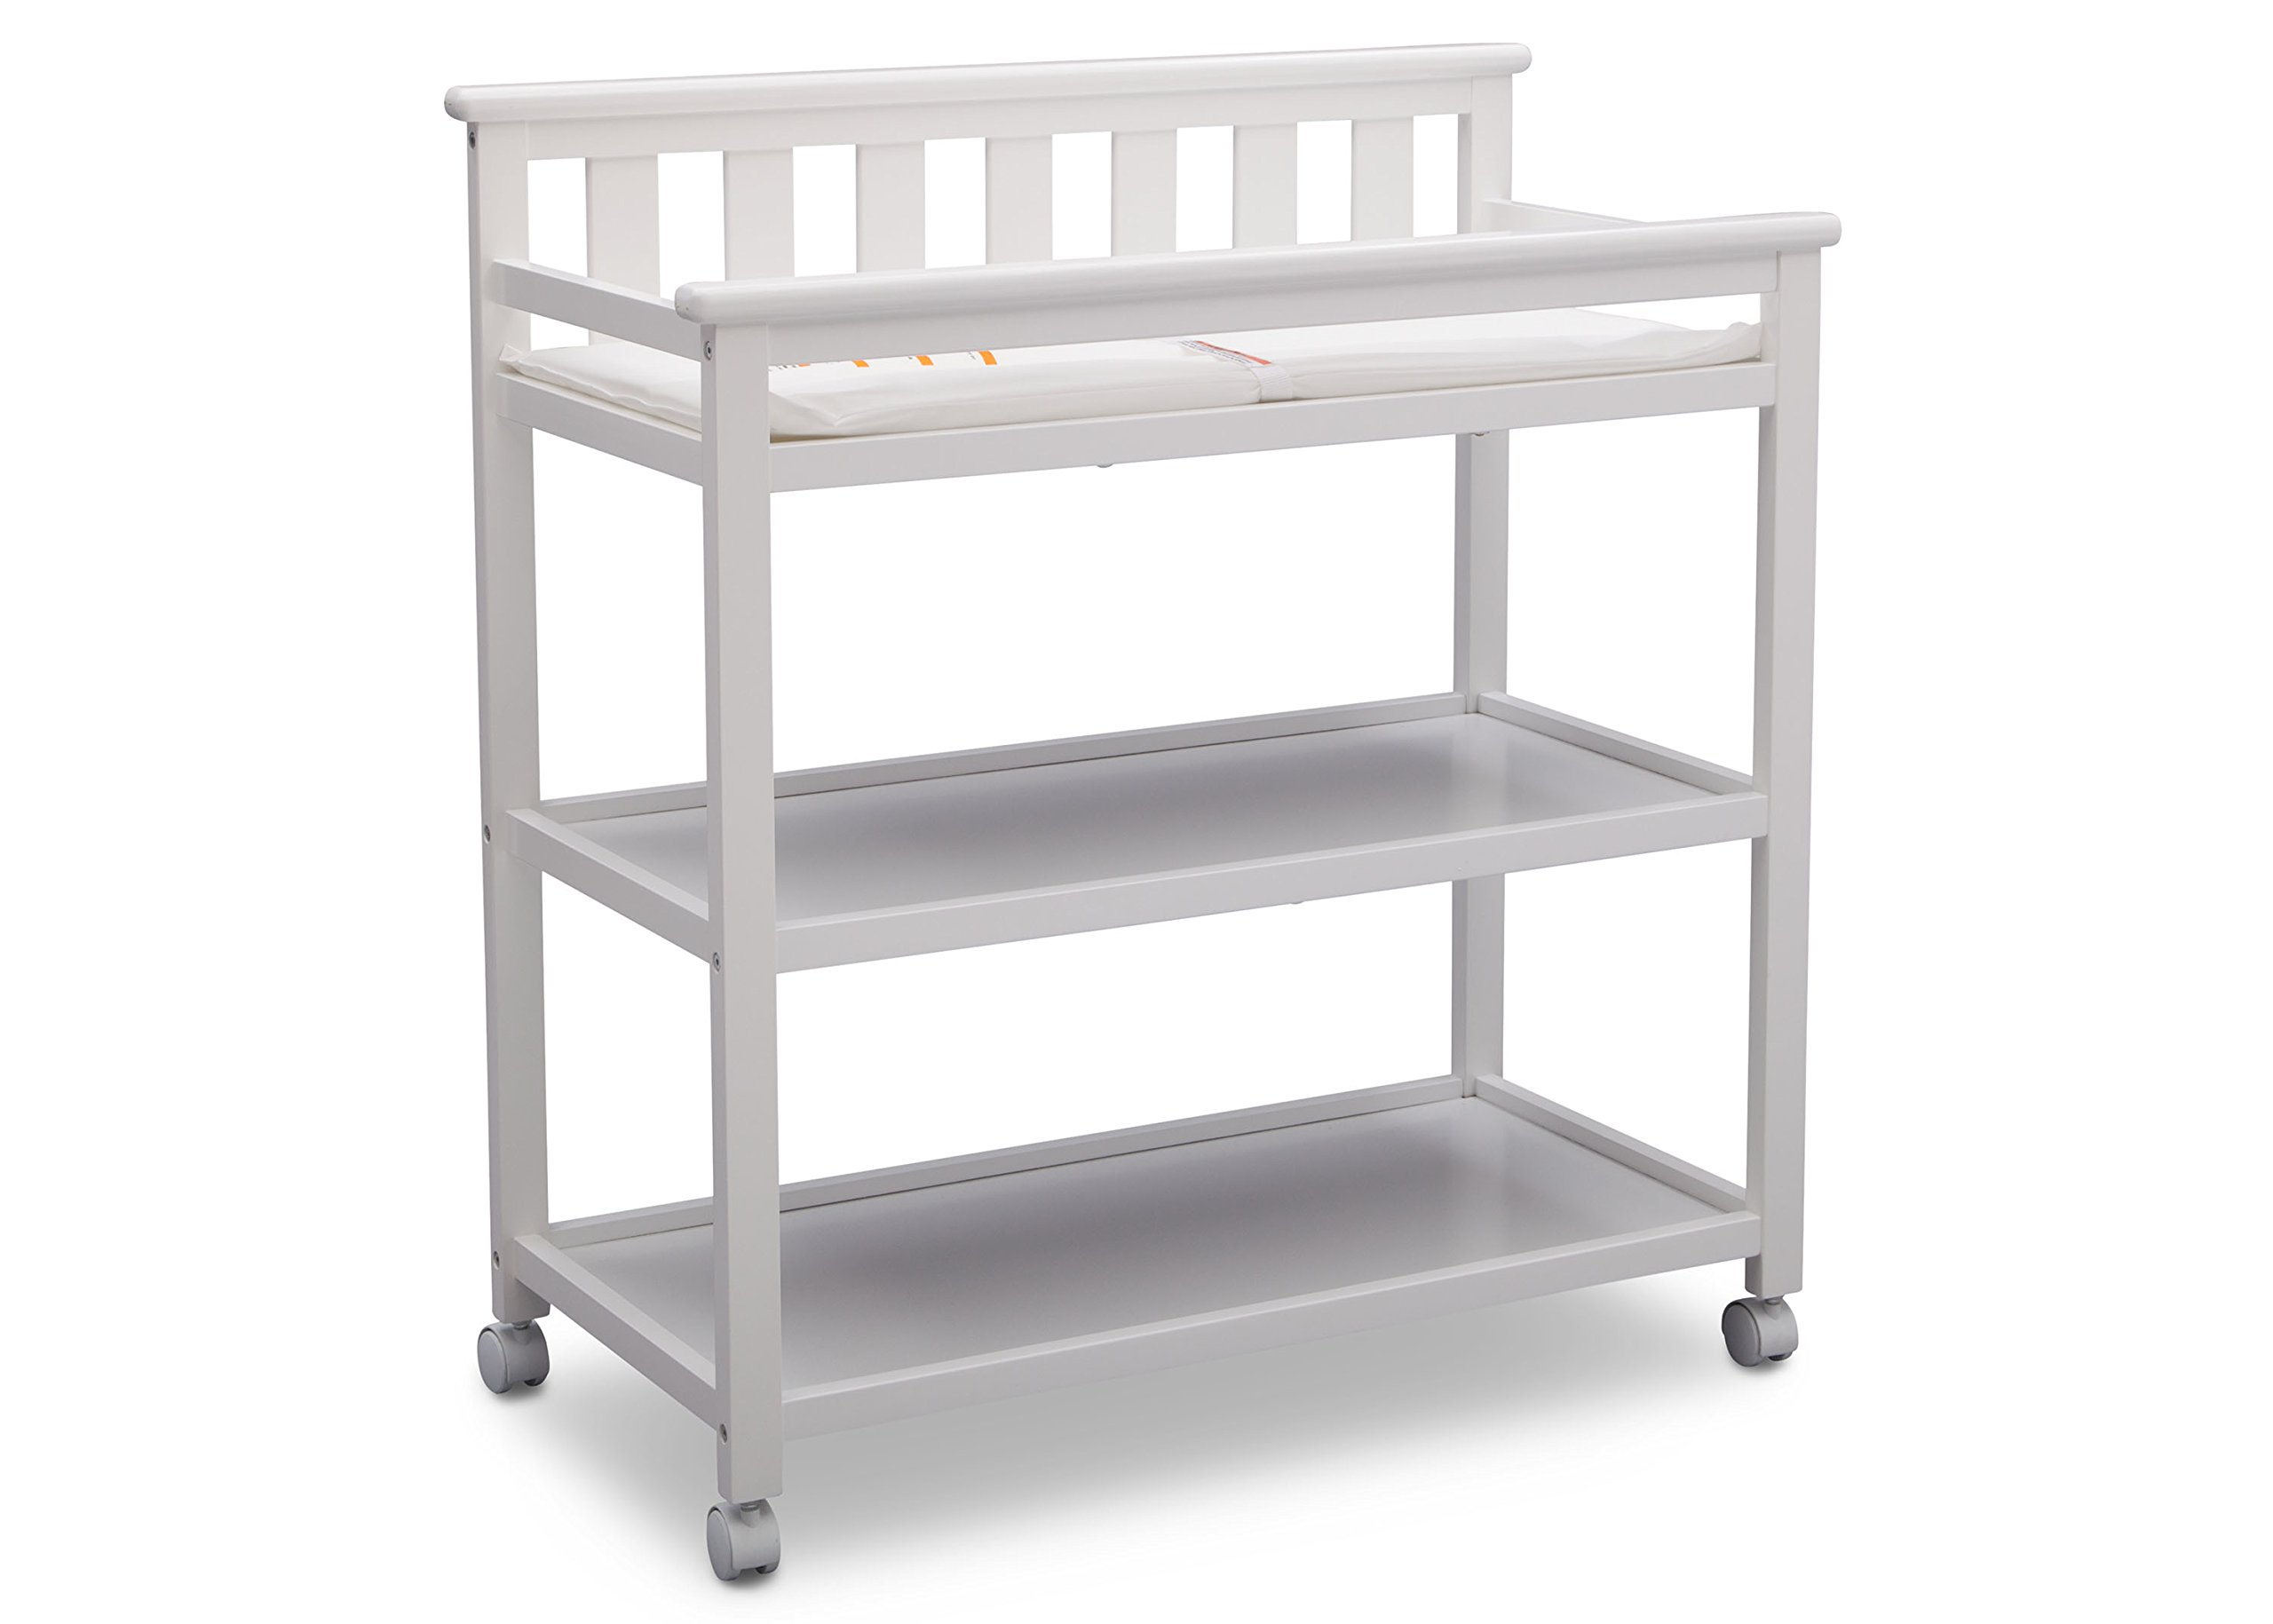 Delta Children Flat Top Changing Table with Casters, White by Delta Children